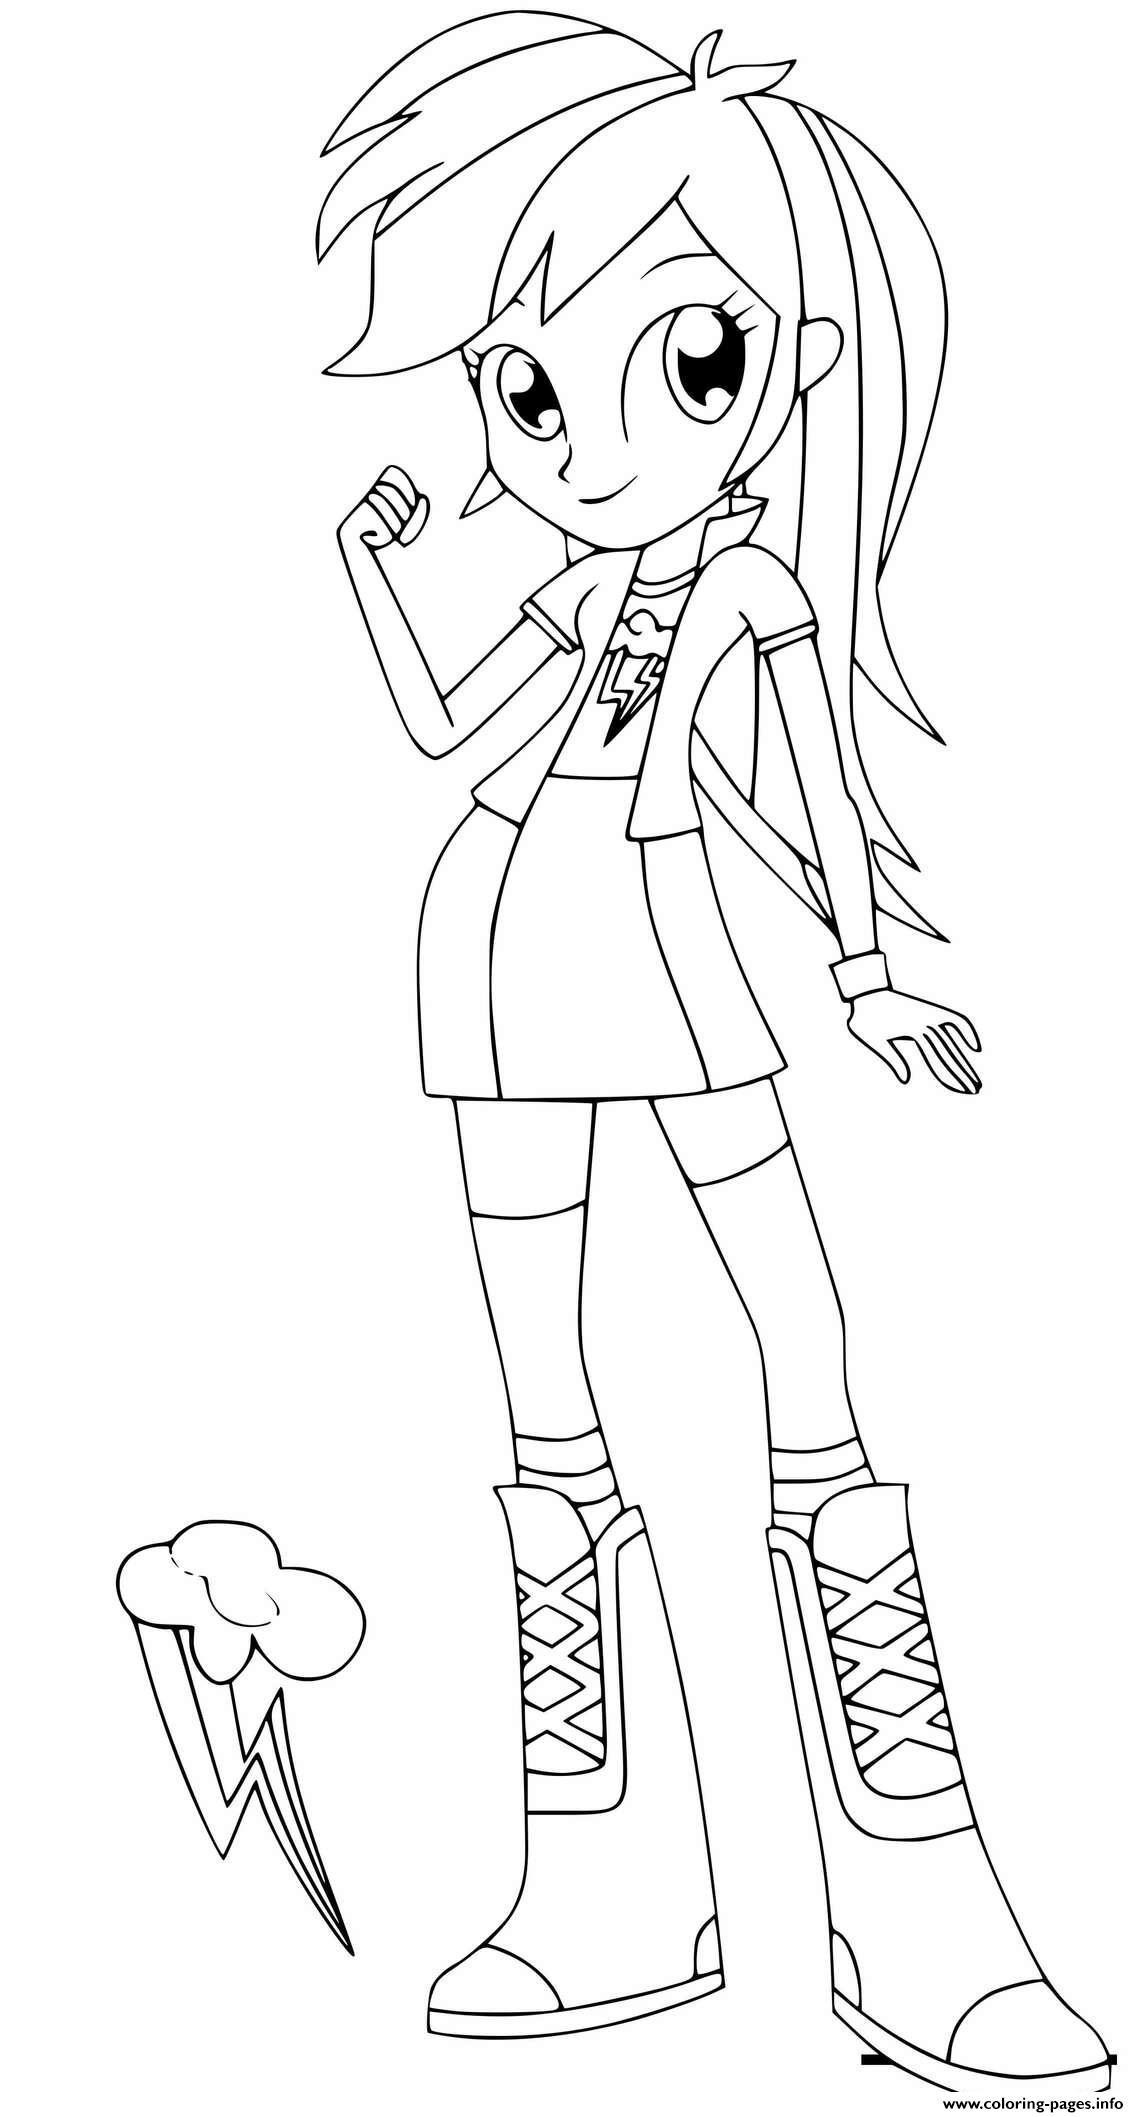 Equestria Girls Rainbow Dash coloring pages